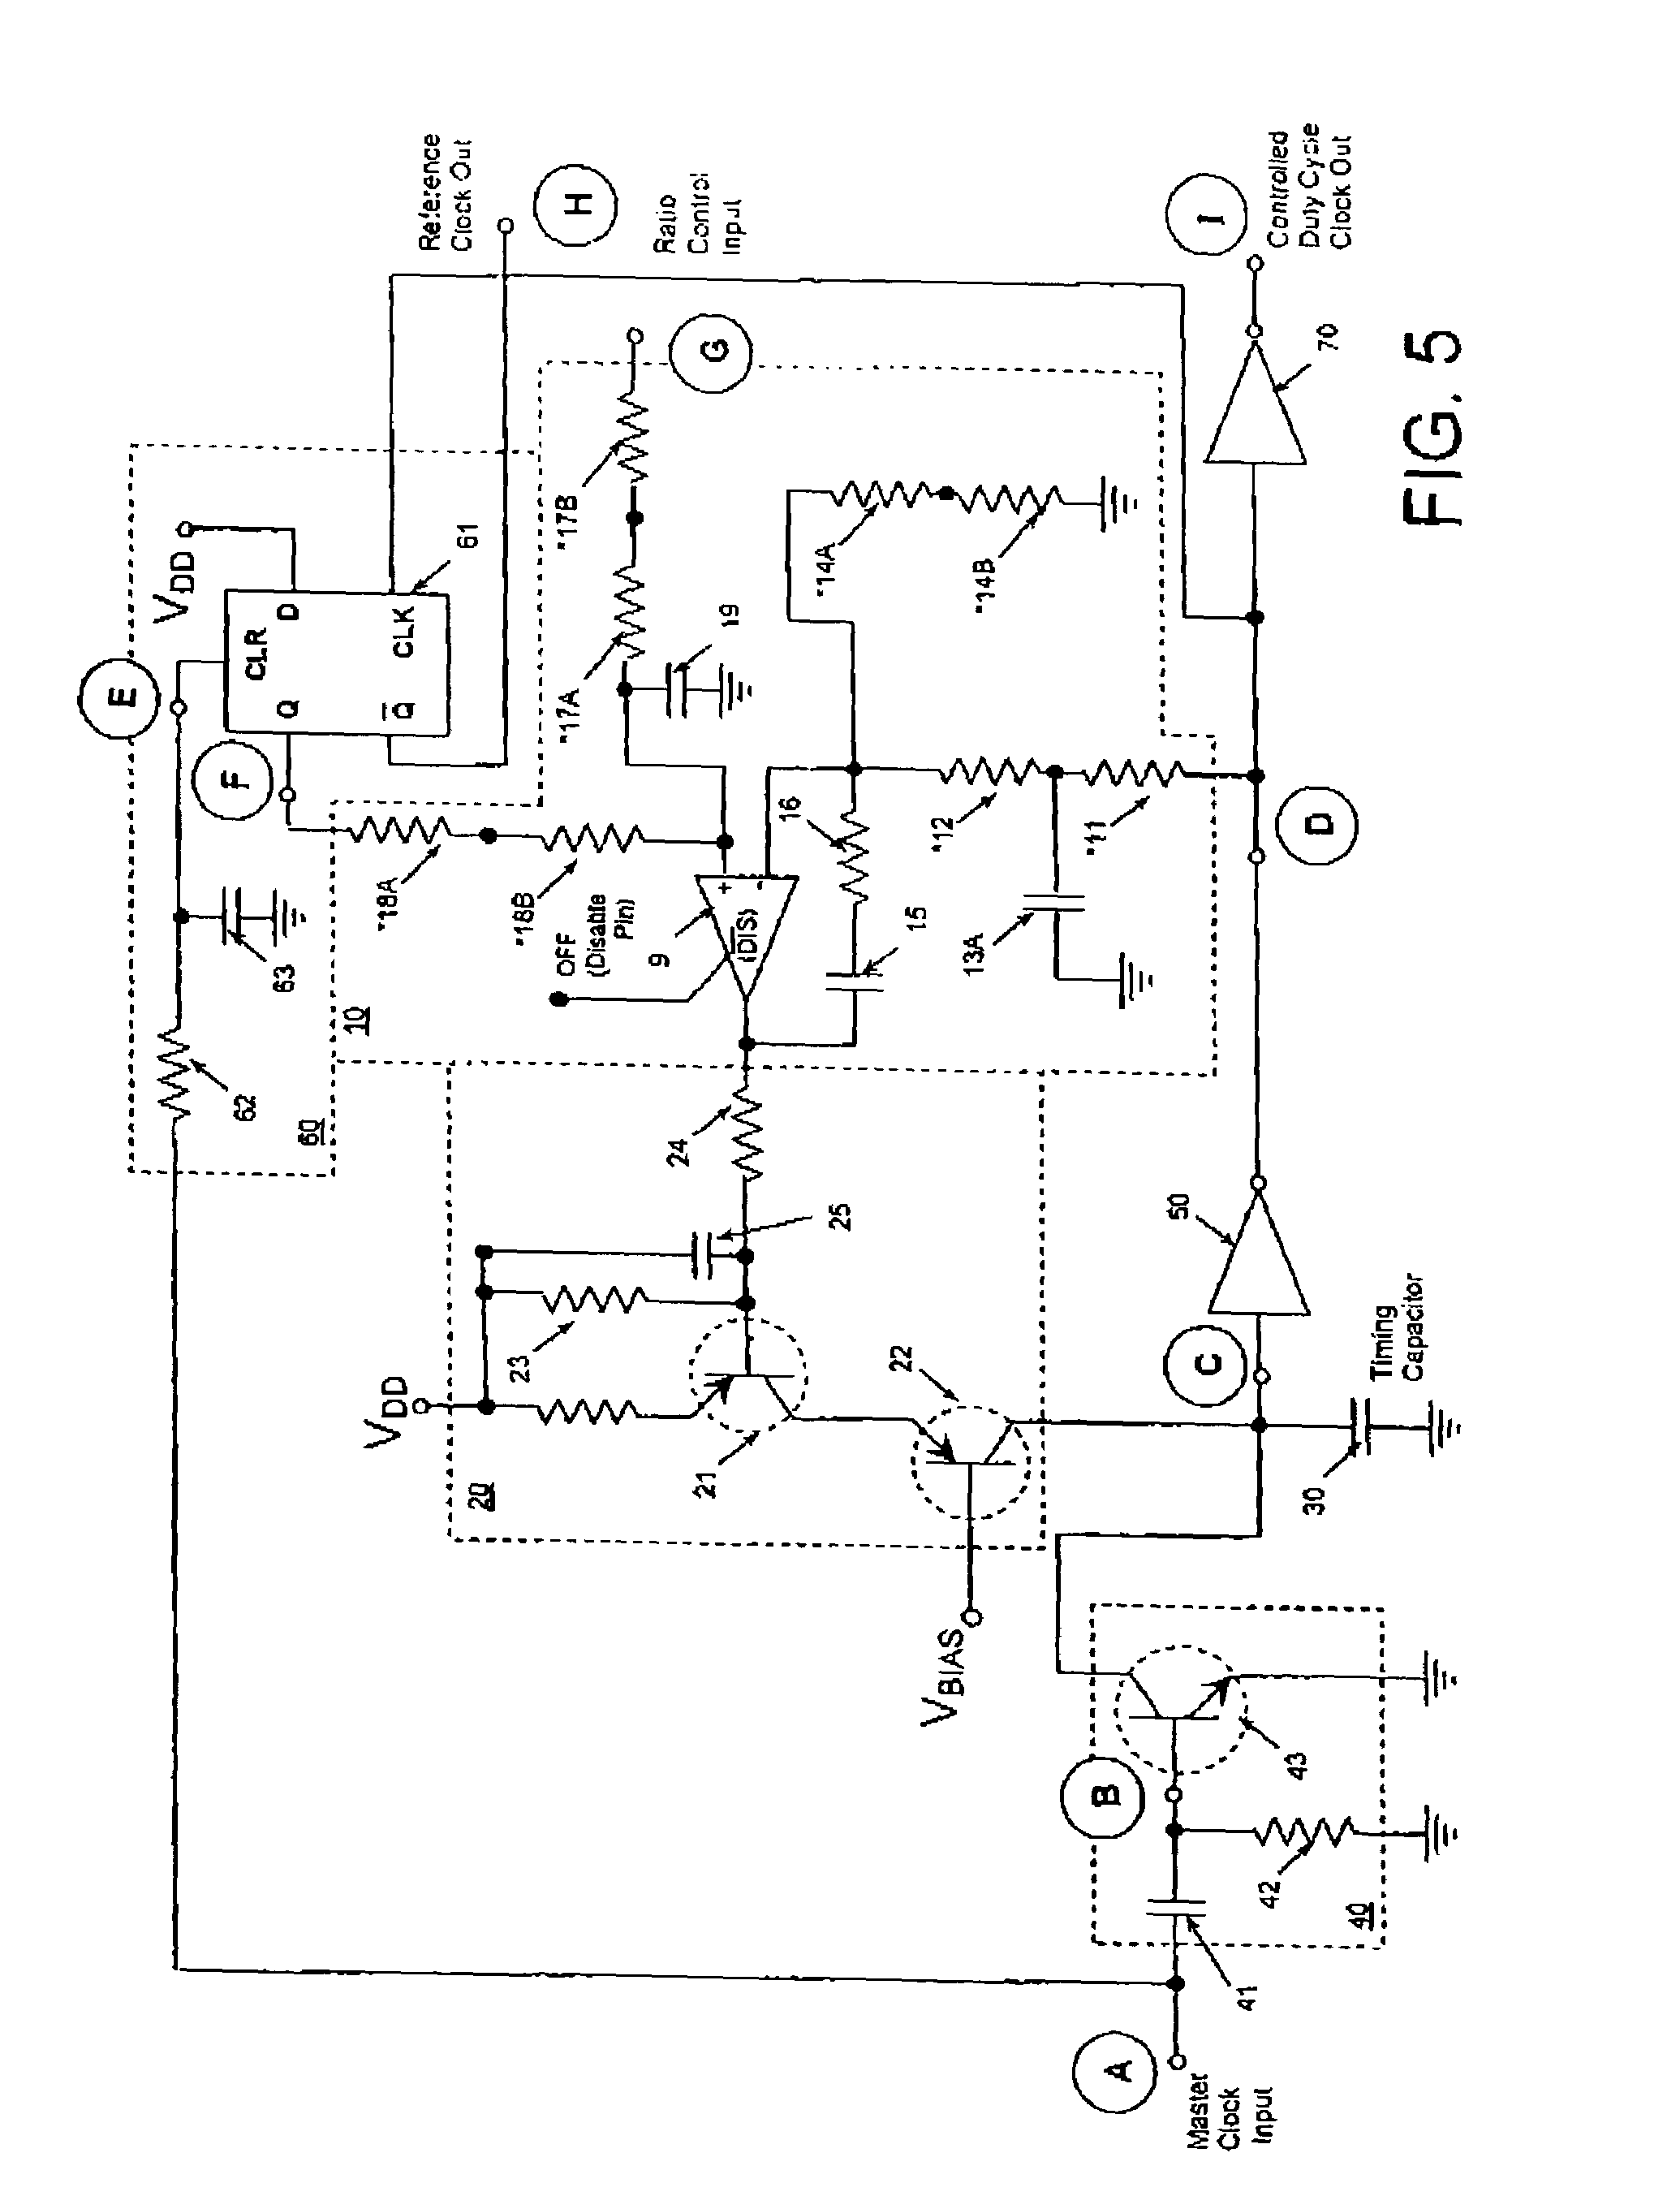 patent us7138856 - input filter circuit for an operational amplifier